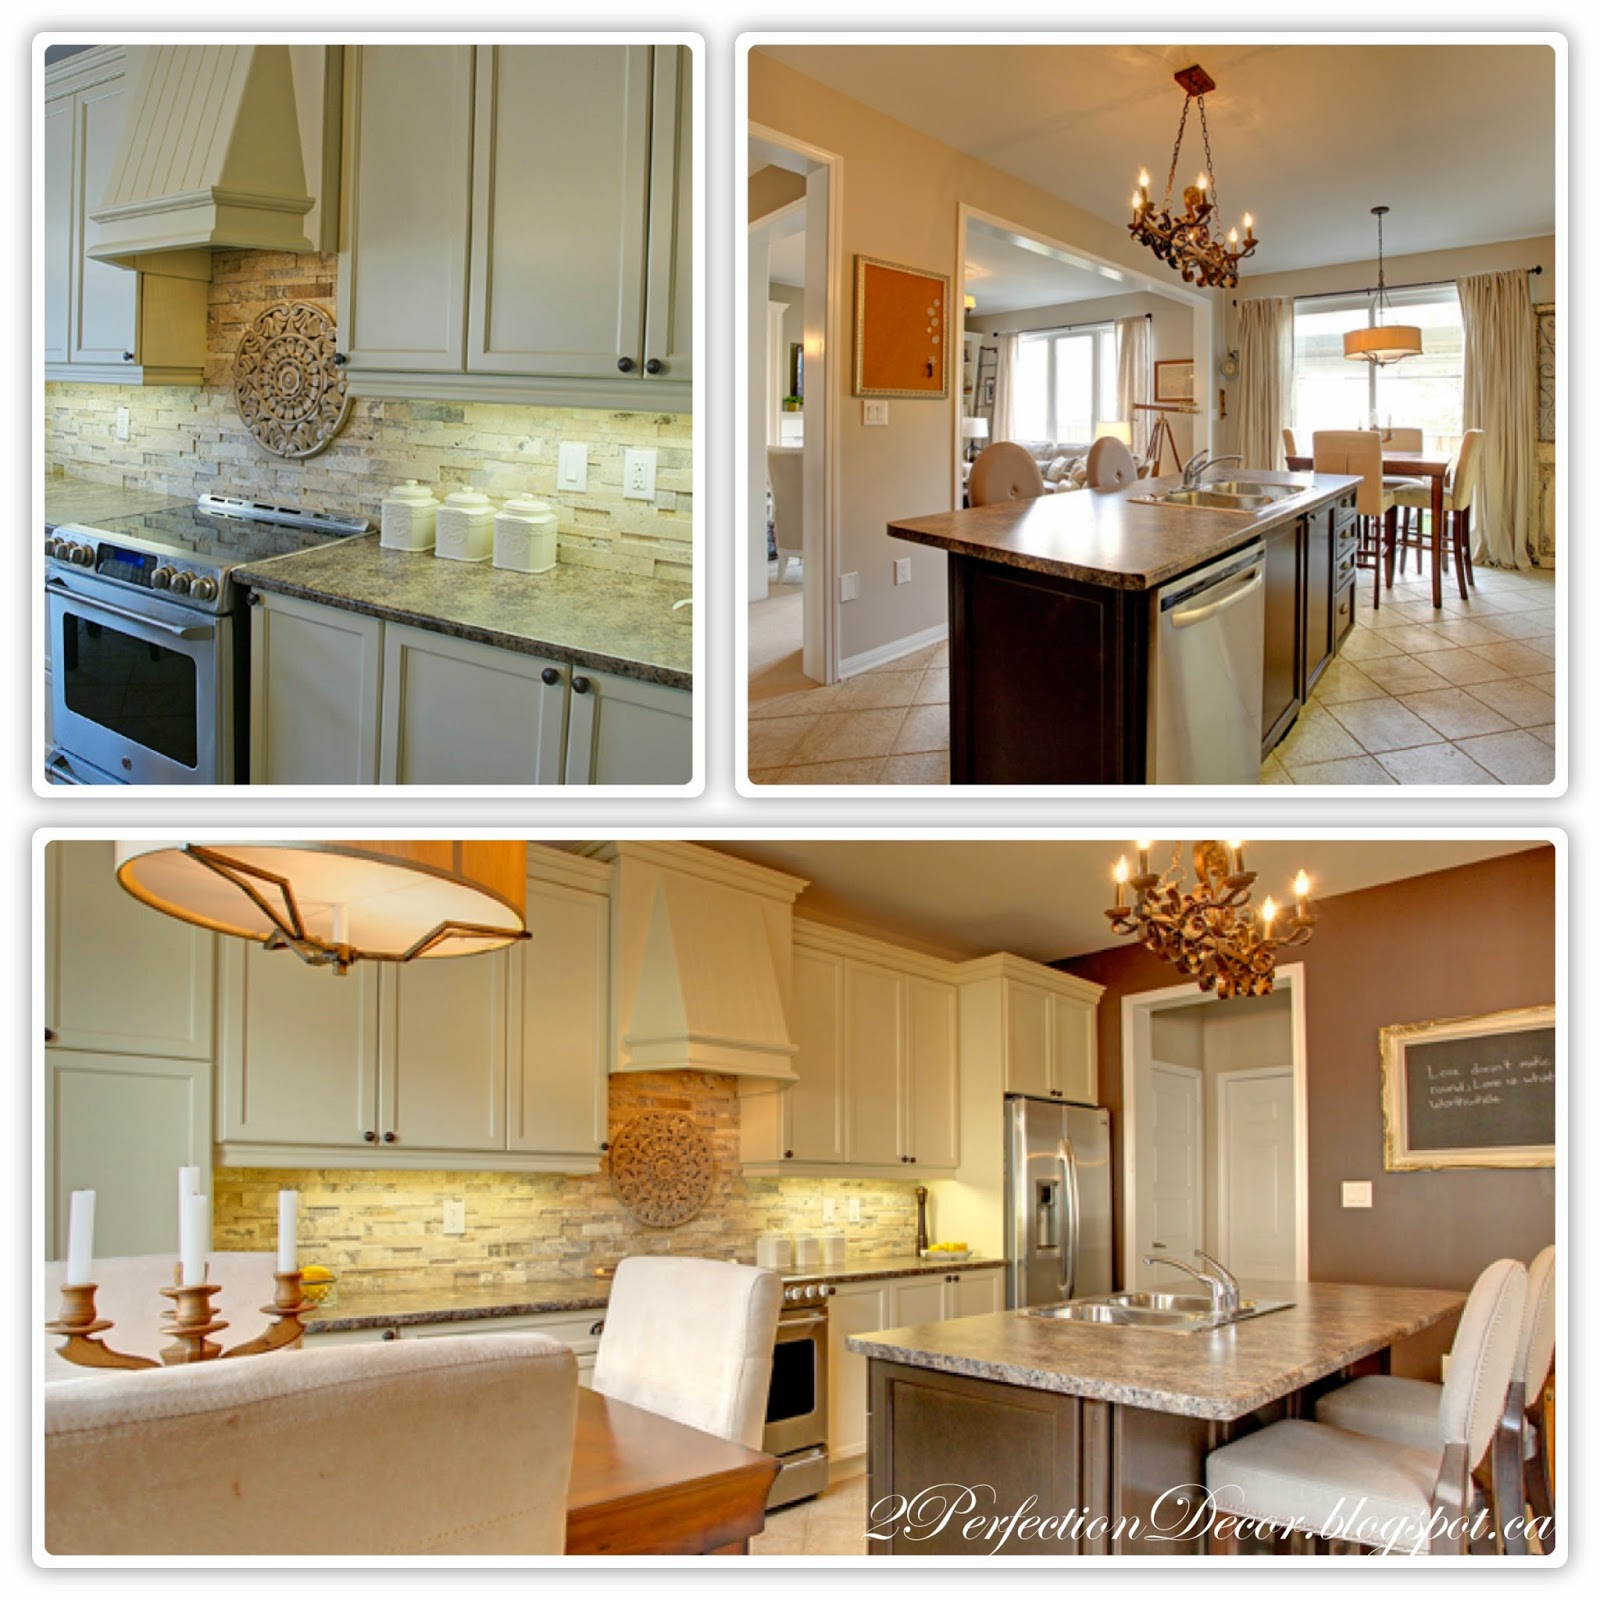 Rona Carries Kitchen Cabinets For Your Kitchen Renovation Decorating